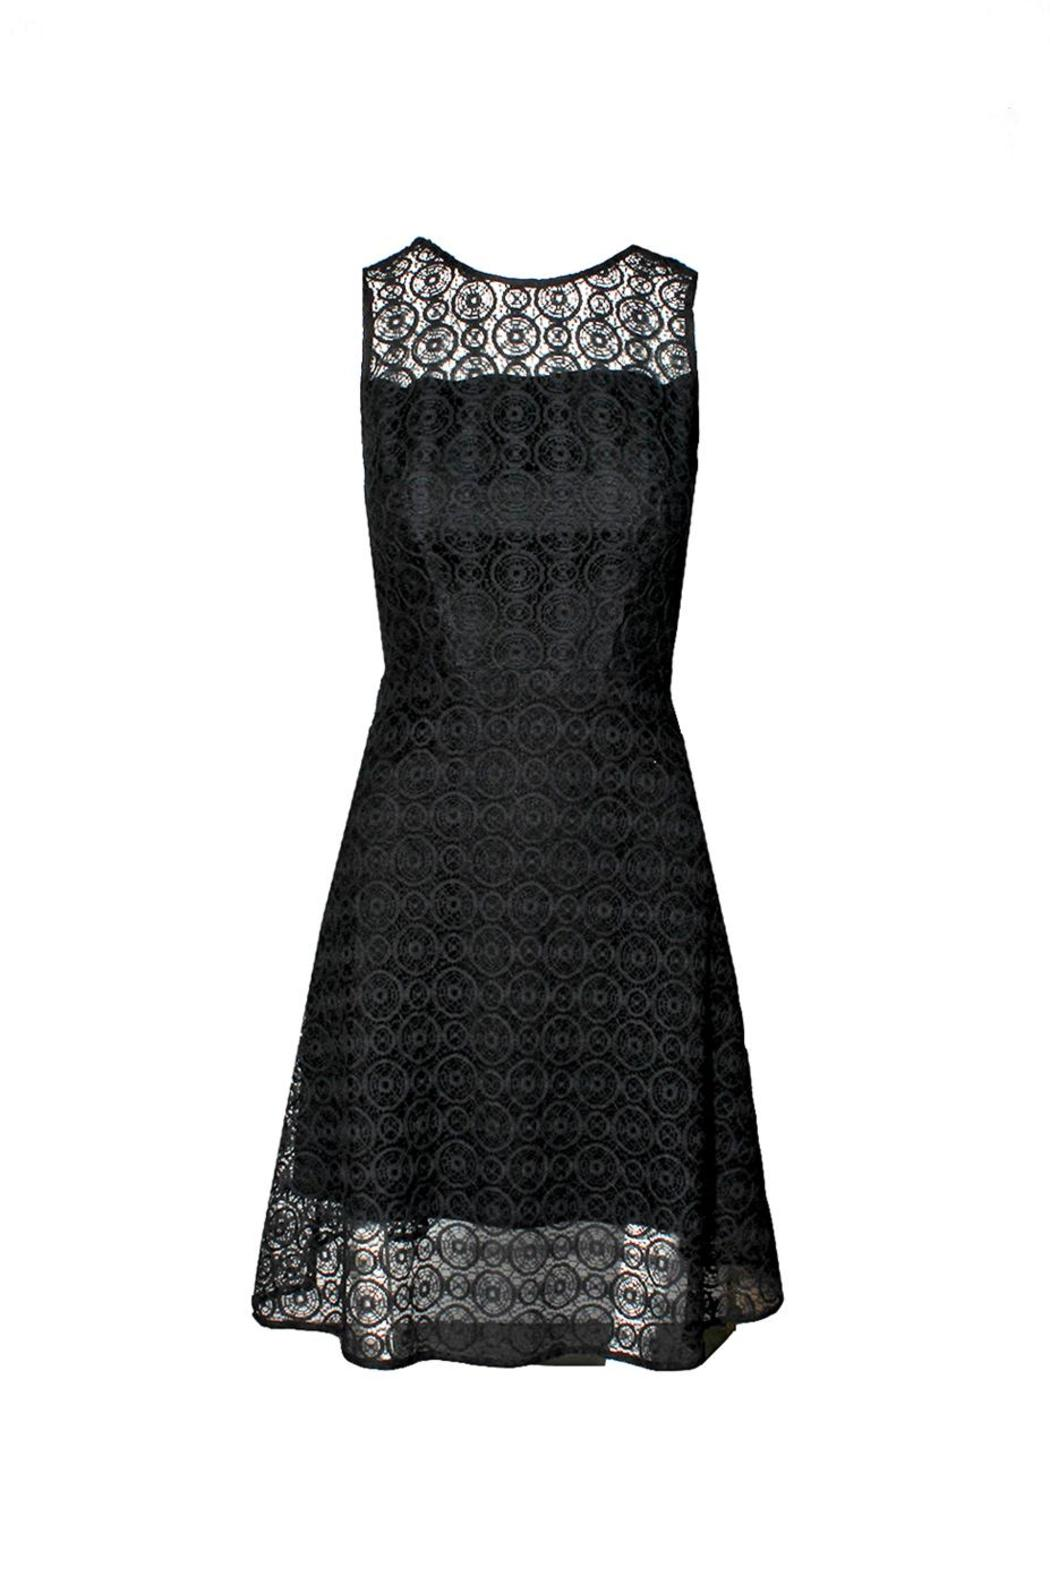 Askari  Elegant Black Dress - Main Image